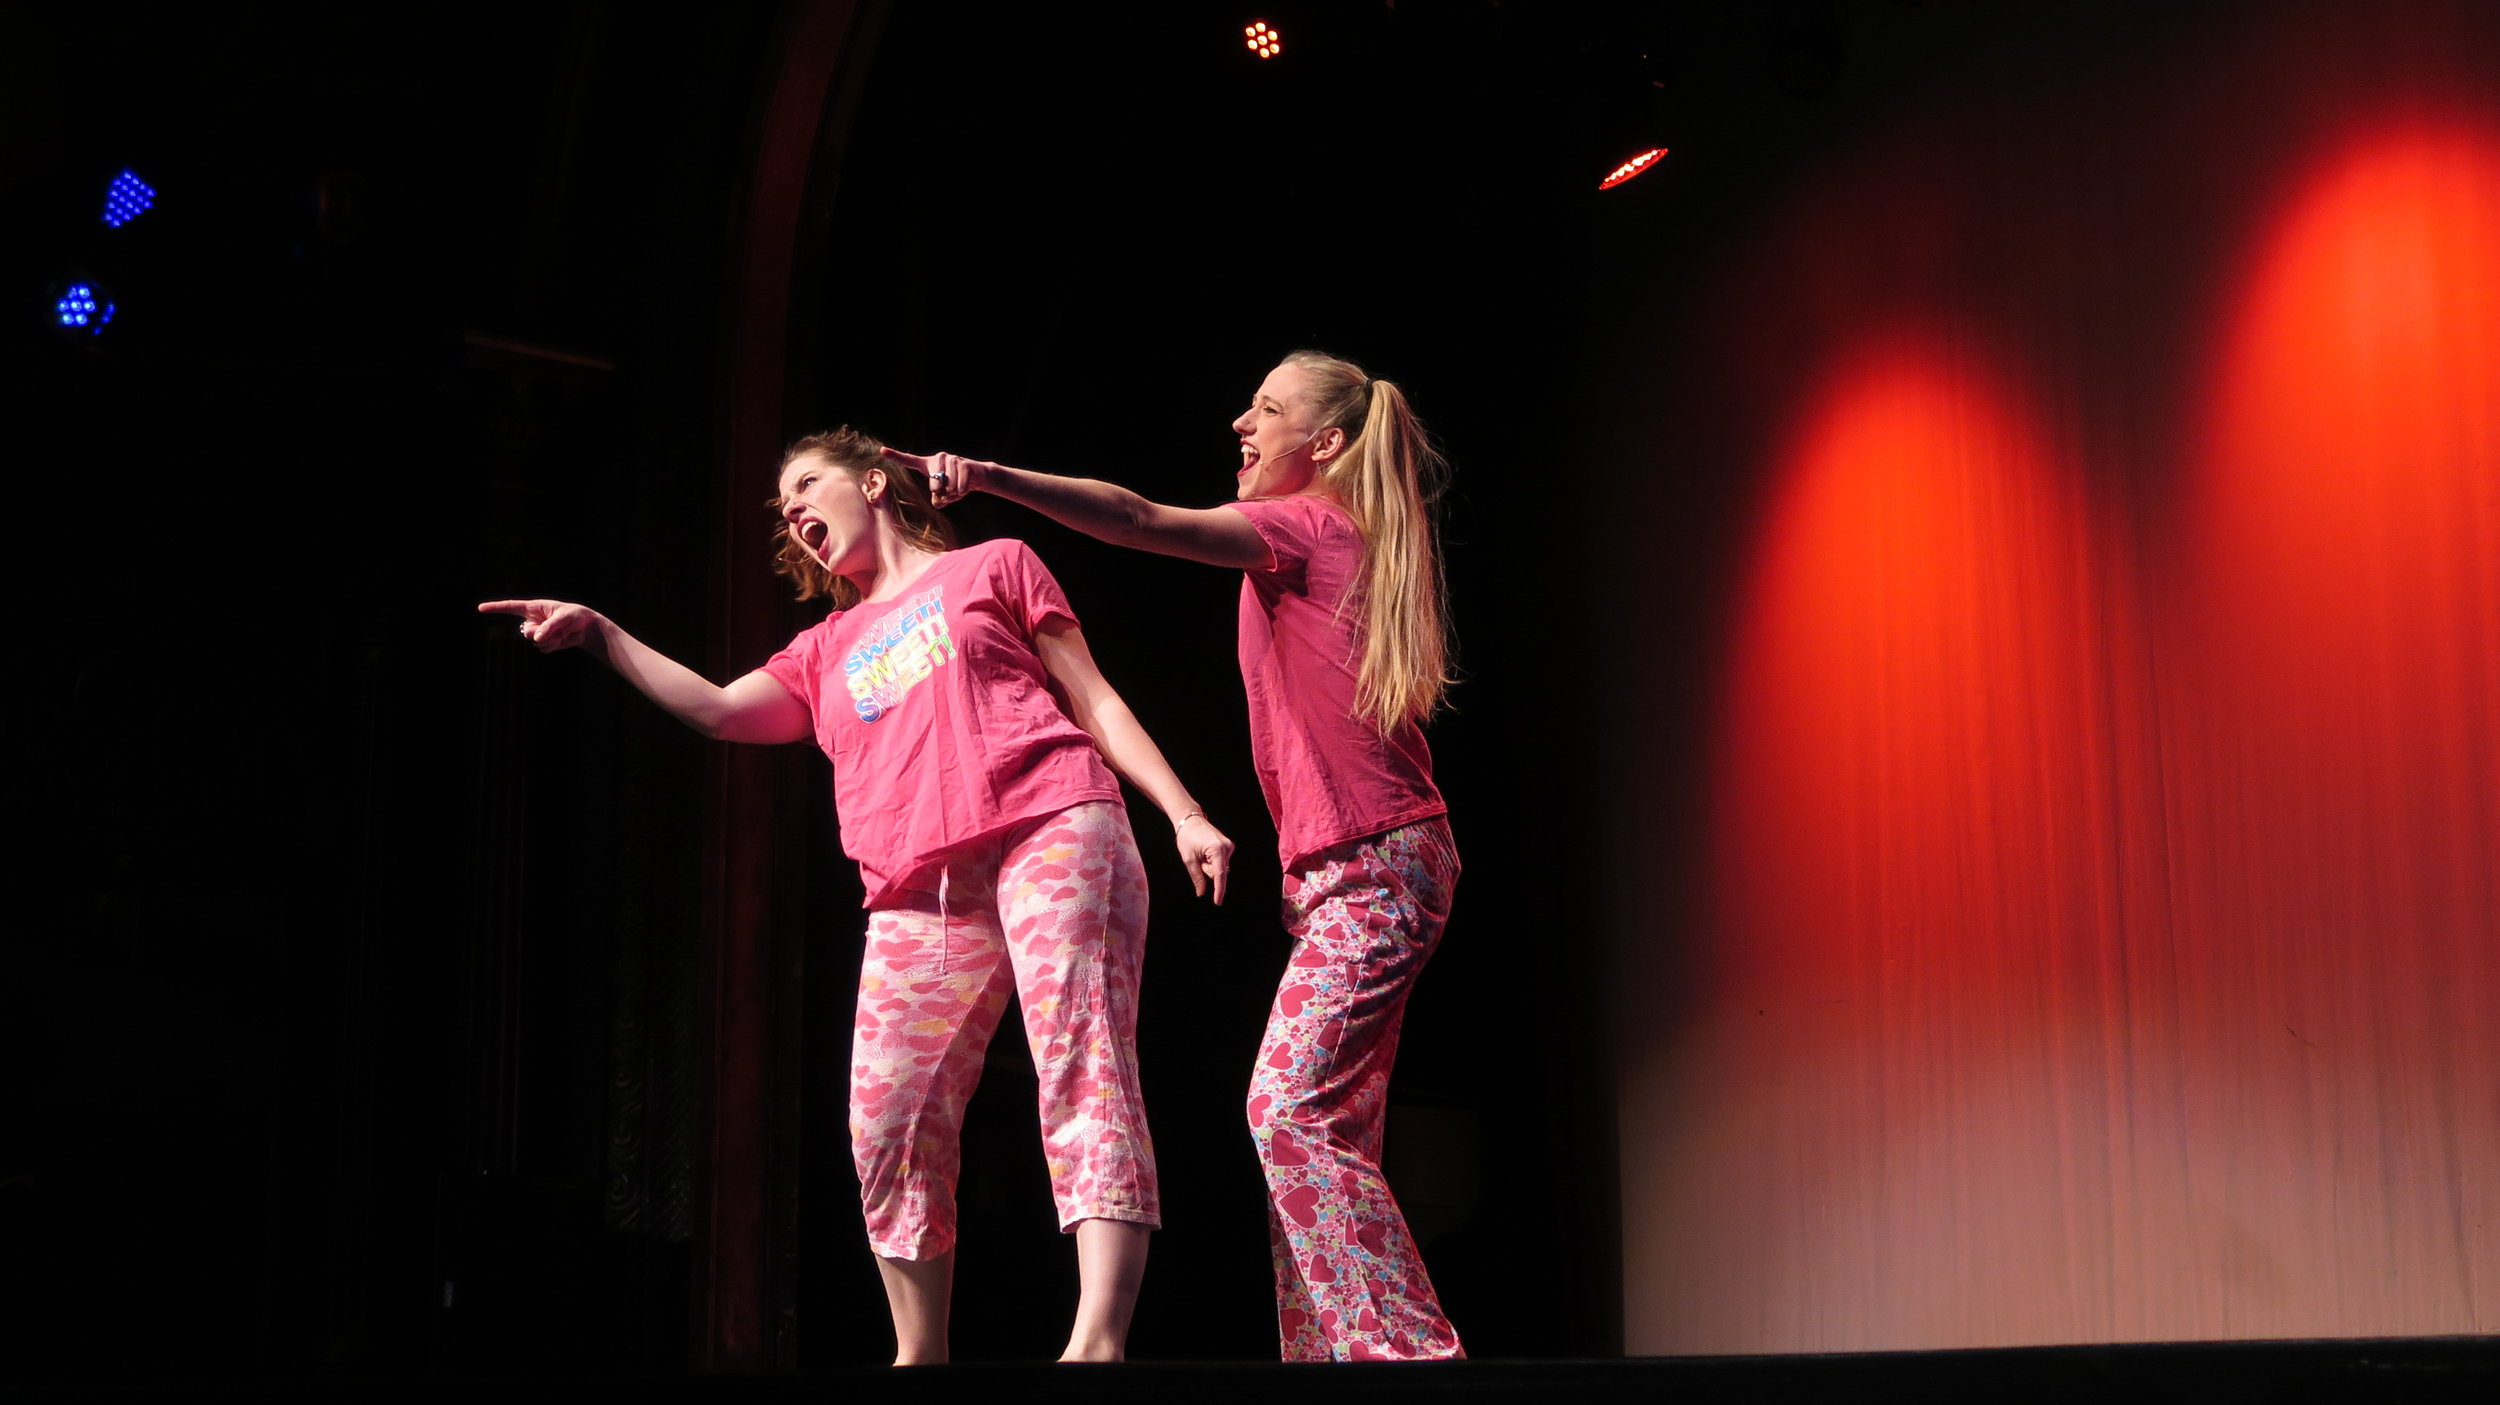 Broad Comedy's musical satire Planned Parenthood performance